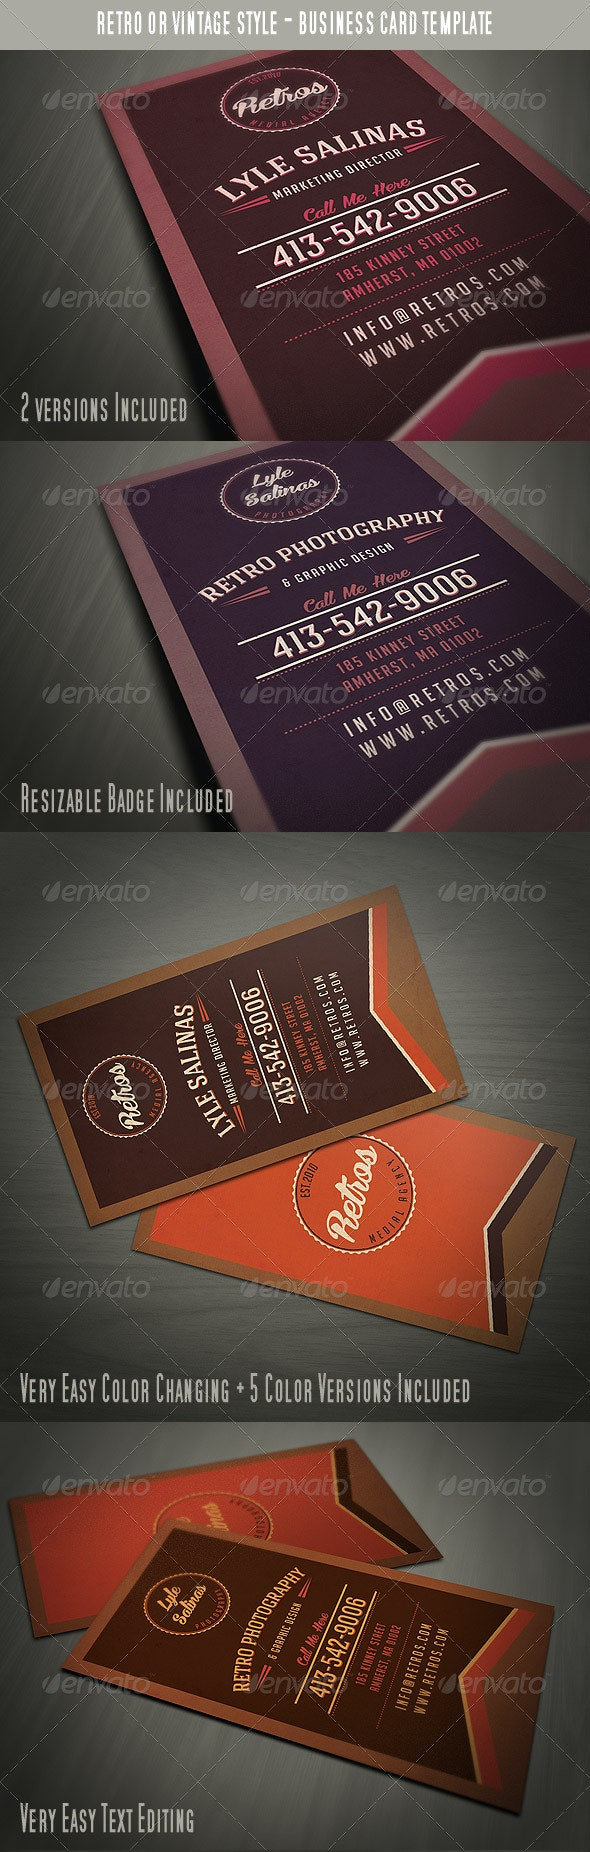 Vintage Style Business Card - Retro/Vintage Business Cards